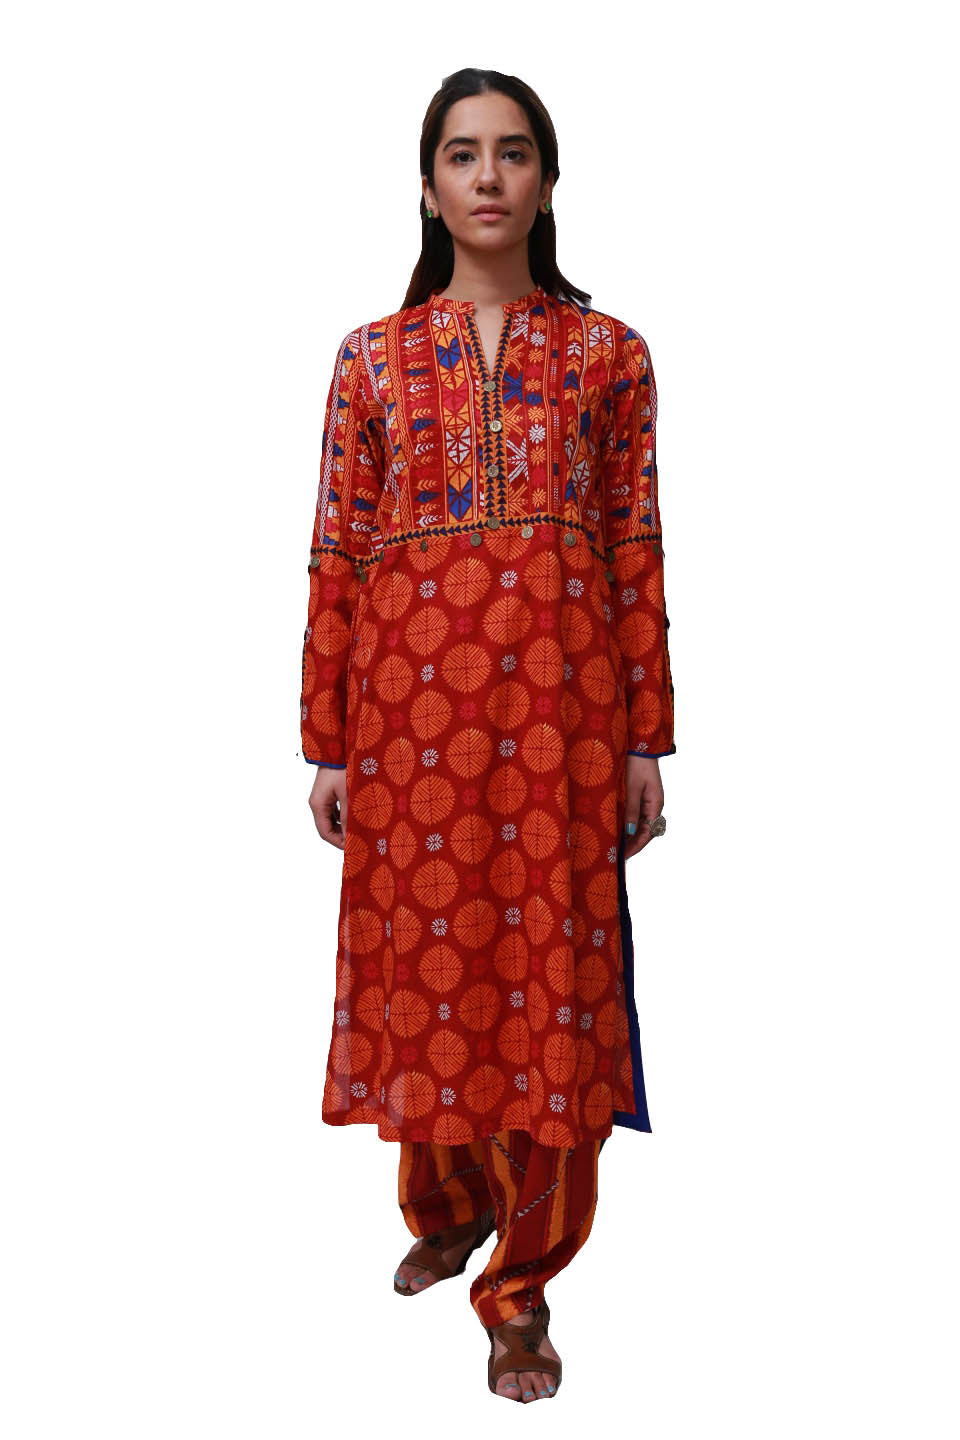 Generation - Maroon Phulkari Co-Ords